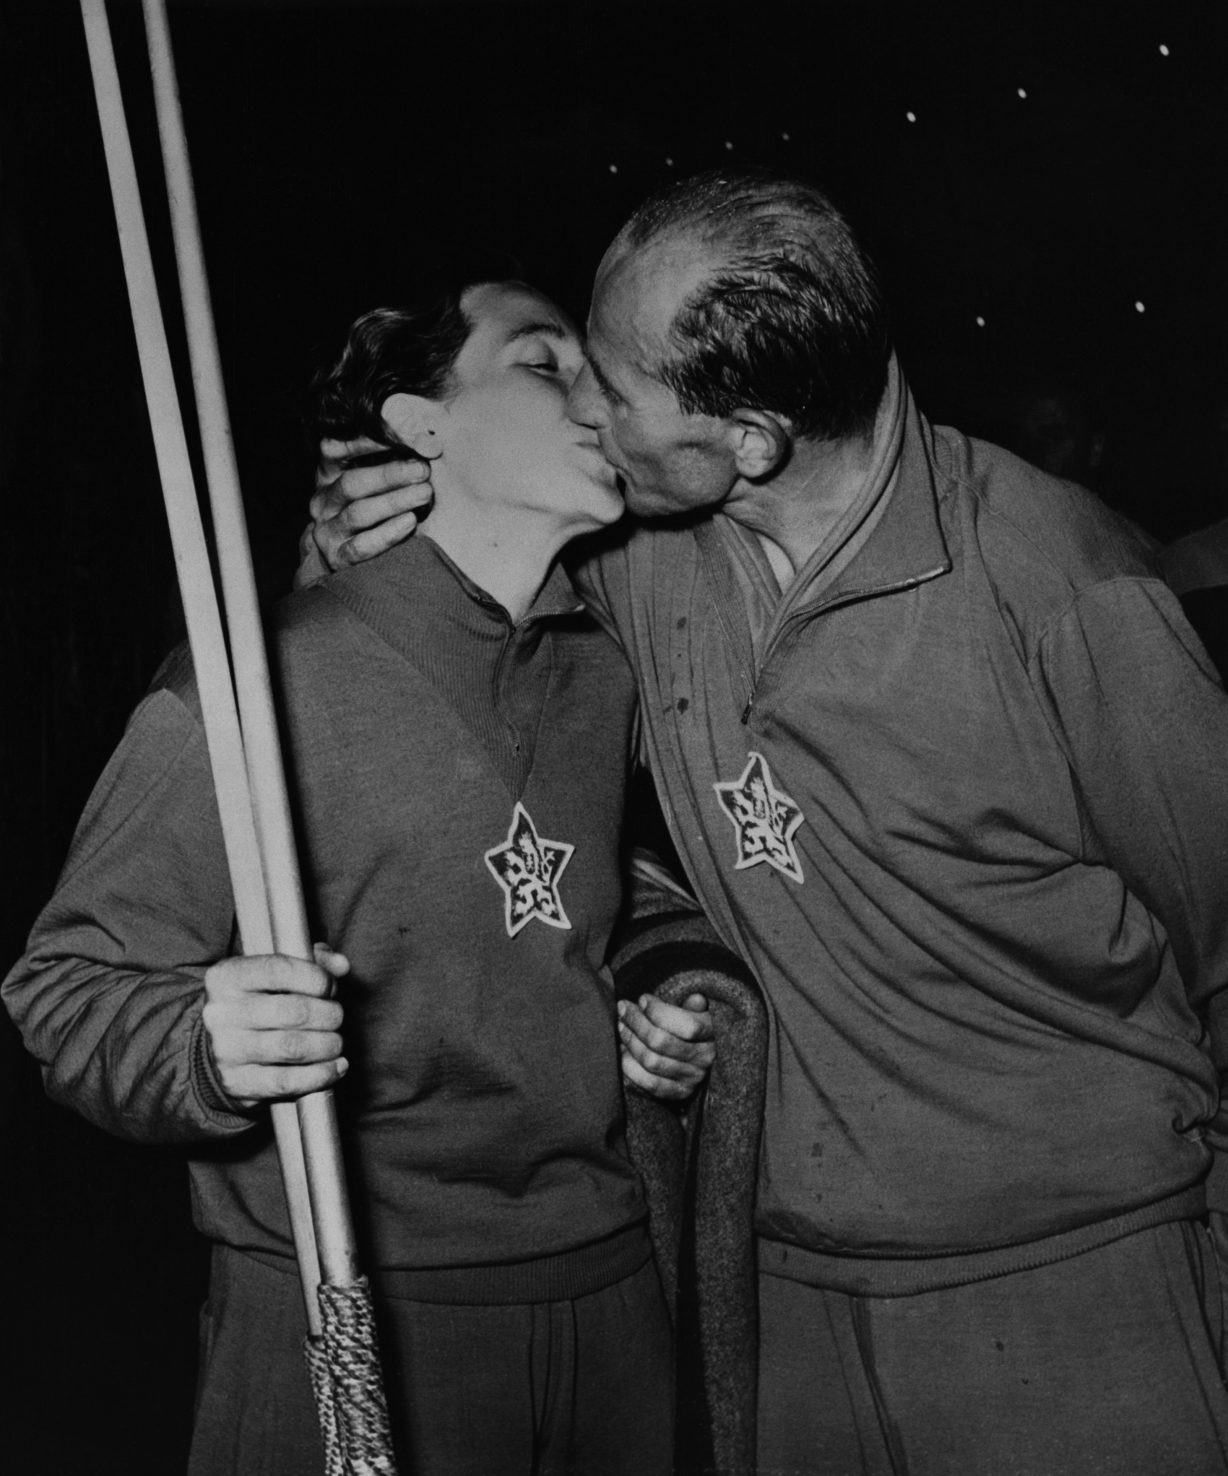 The Czechoslovakian athlete Emil Zatopek kisses his wife Dana, after they secure two gold medals in the 10,000 meters and the javelin at the European Games. Switzerland, 1954. (Photo by © Hulton-Deutsch Collection/CORBIS/Corbis via Getty Images)